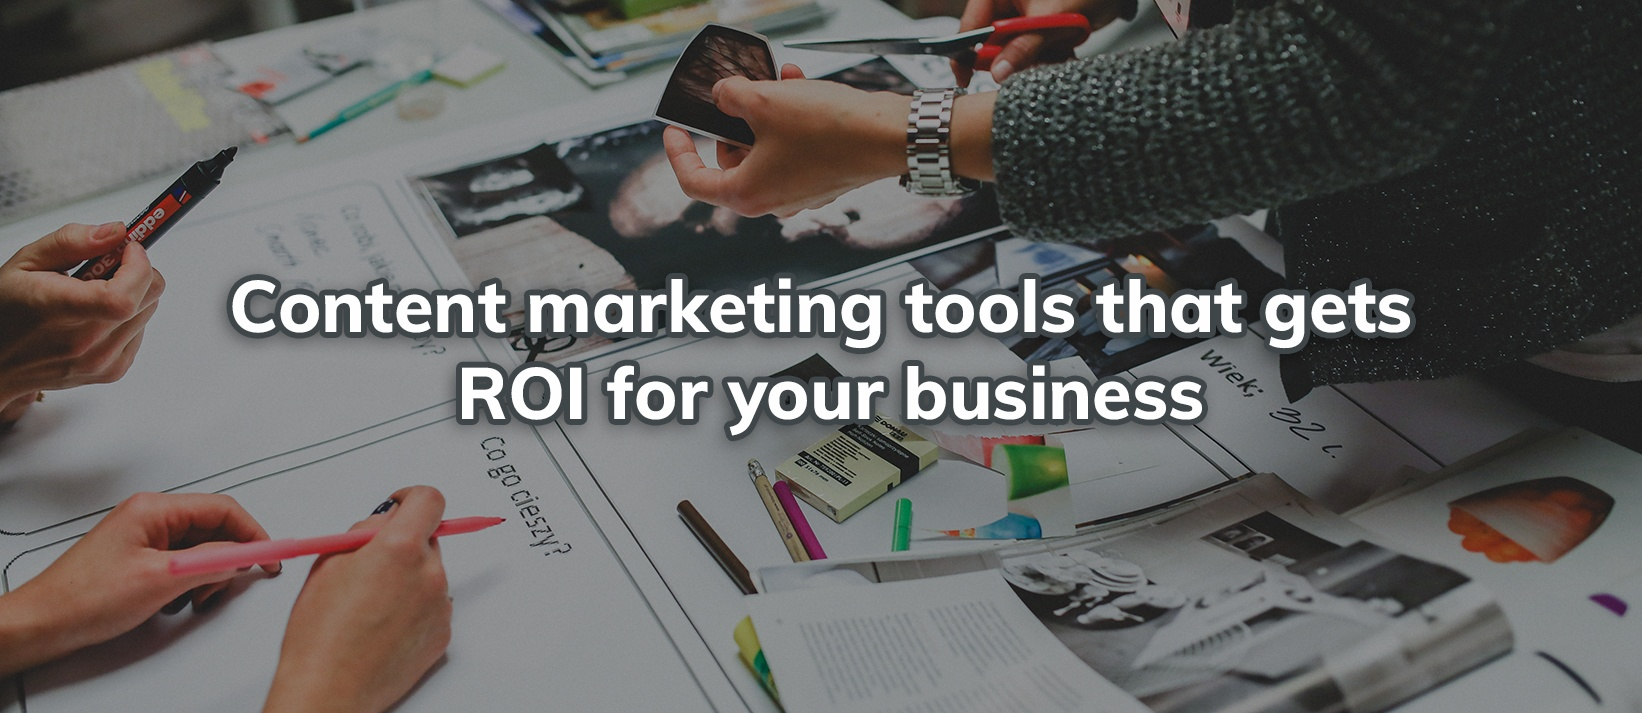 Content marketing tools for ROI.jpg